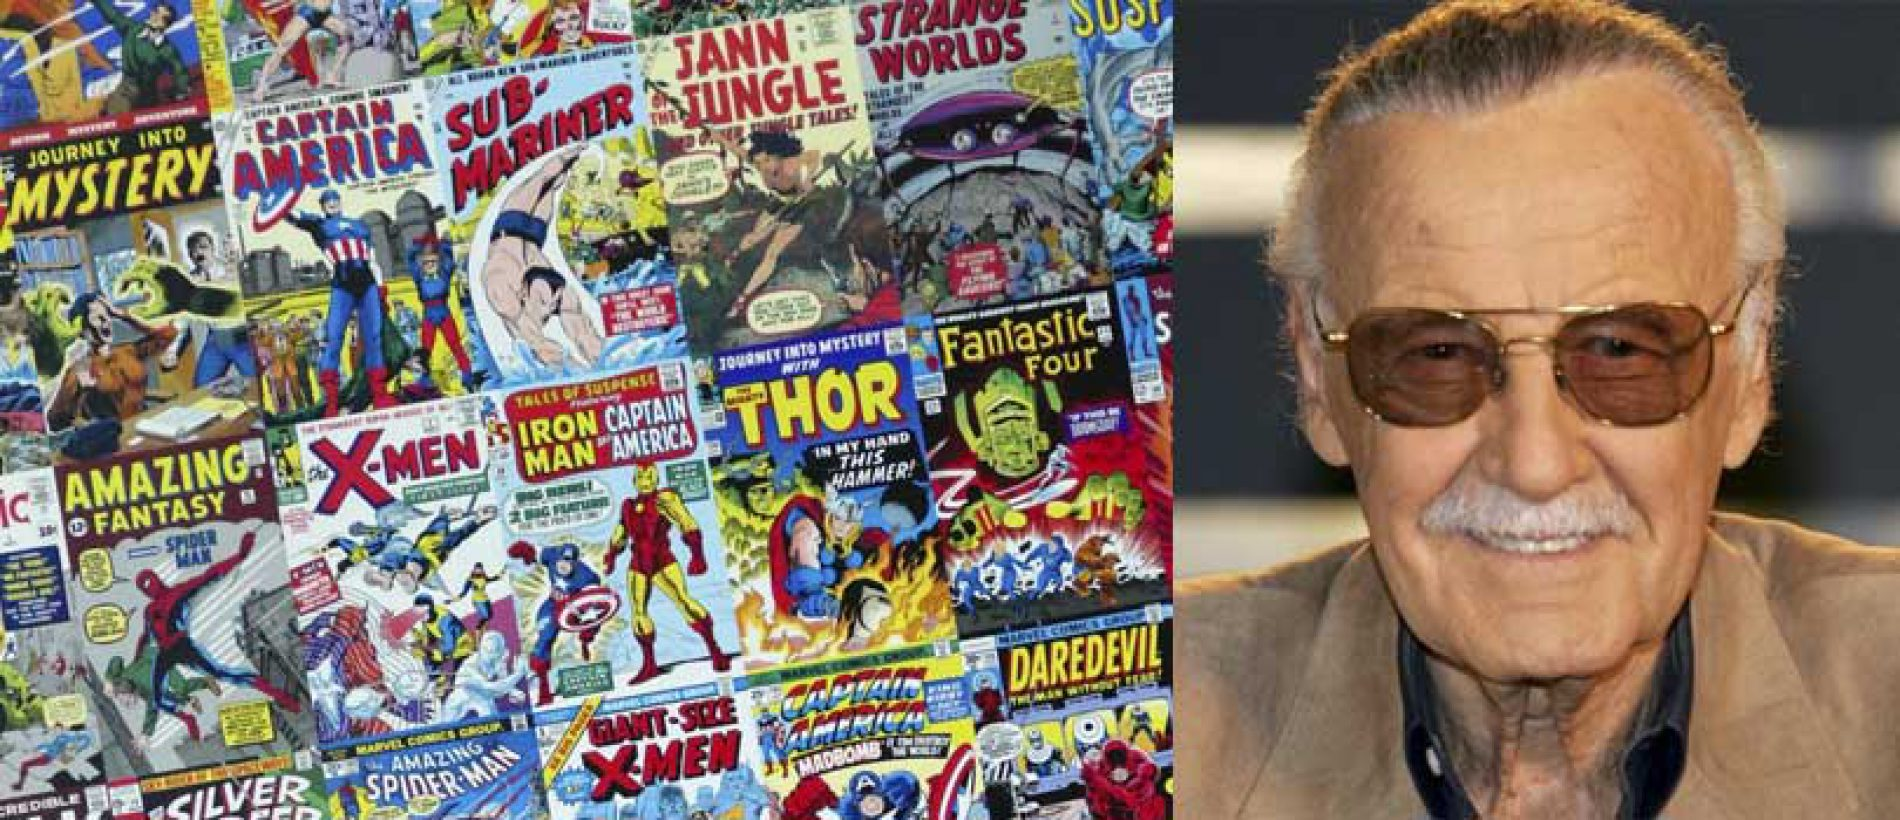 Marvel-legenden Stan Lee nekter for seksuelt misbruk